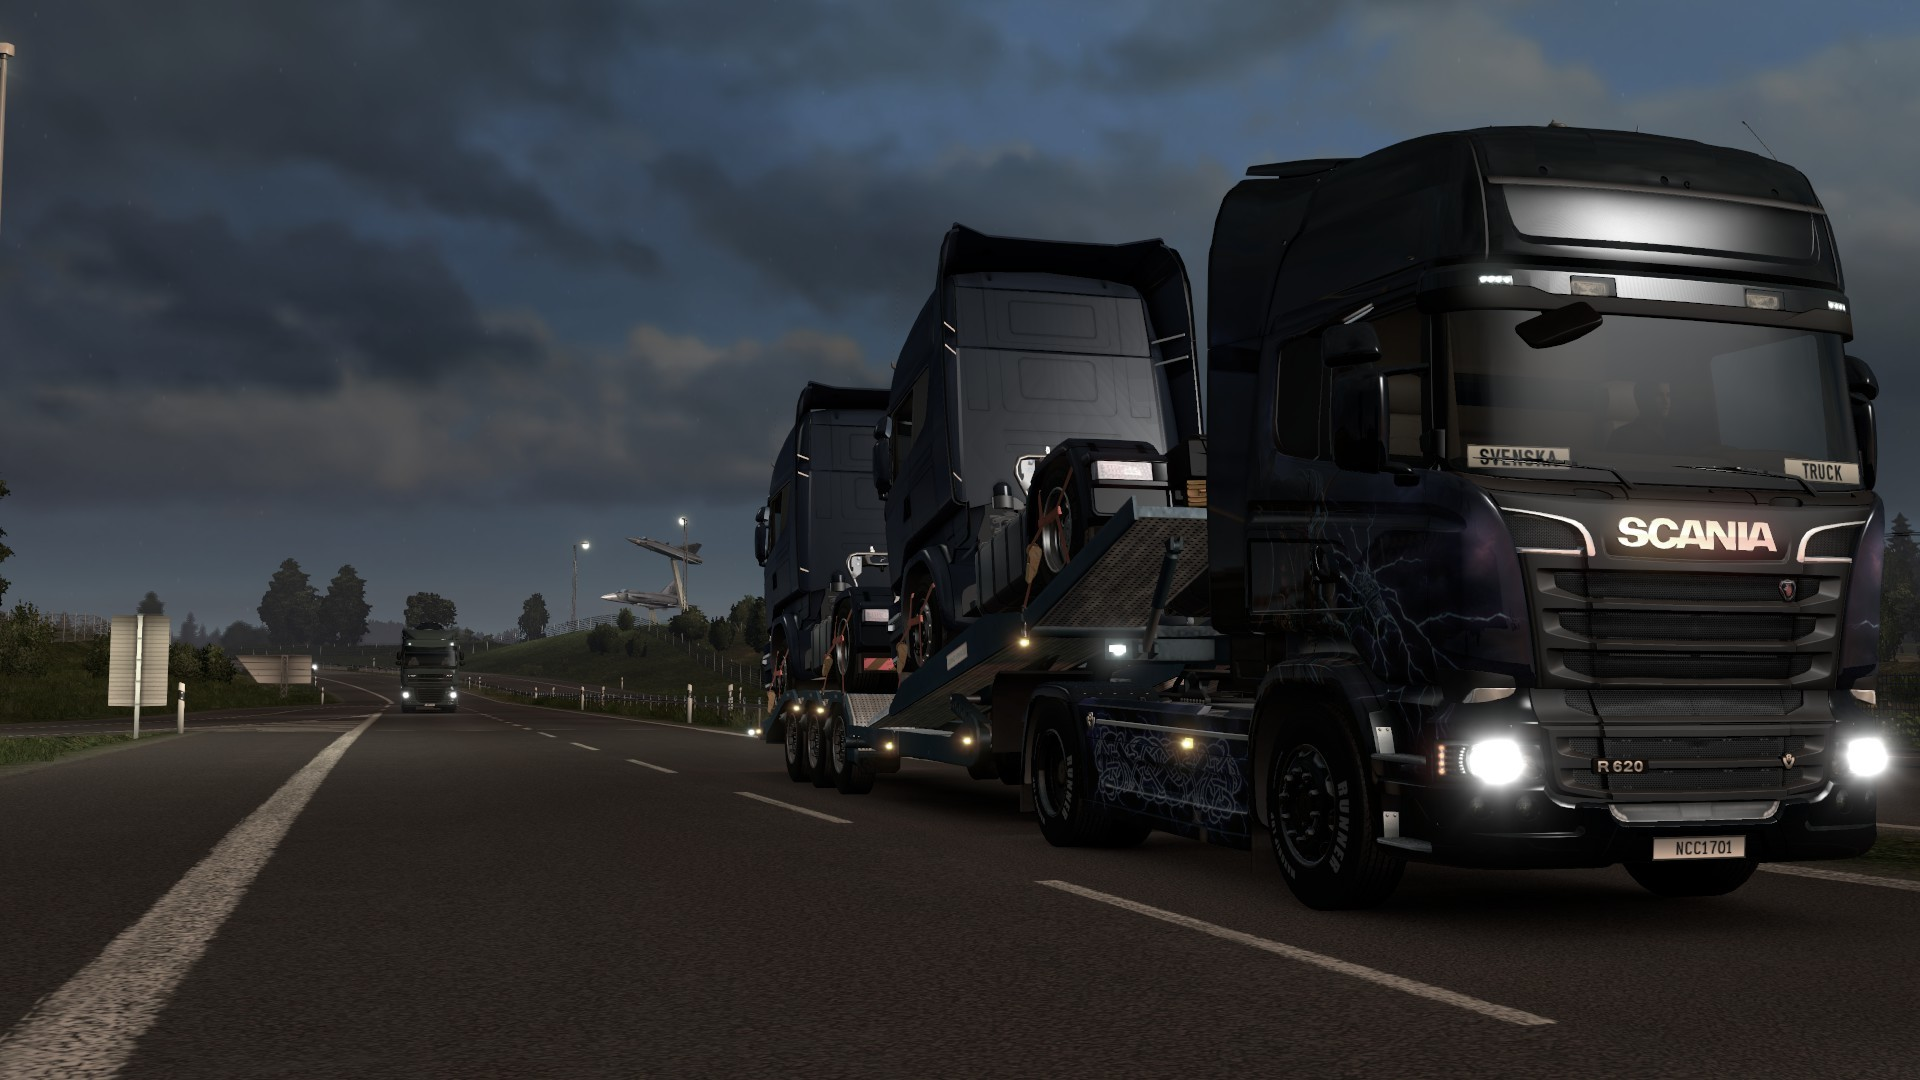 truck trucks wallpapers 1080p volvo resolution scania hd wm7 euro simulator absolutely cargo 1080 cool 1920 achievements steam community guide